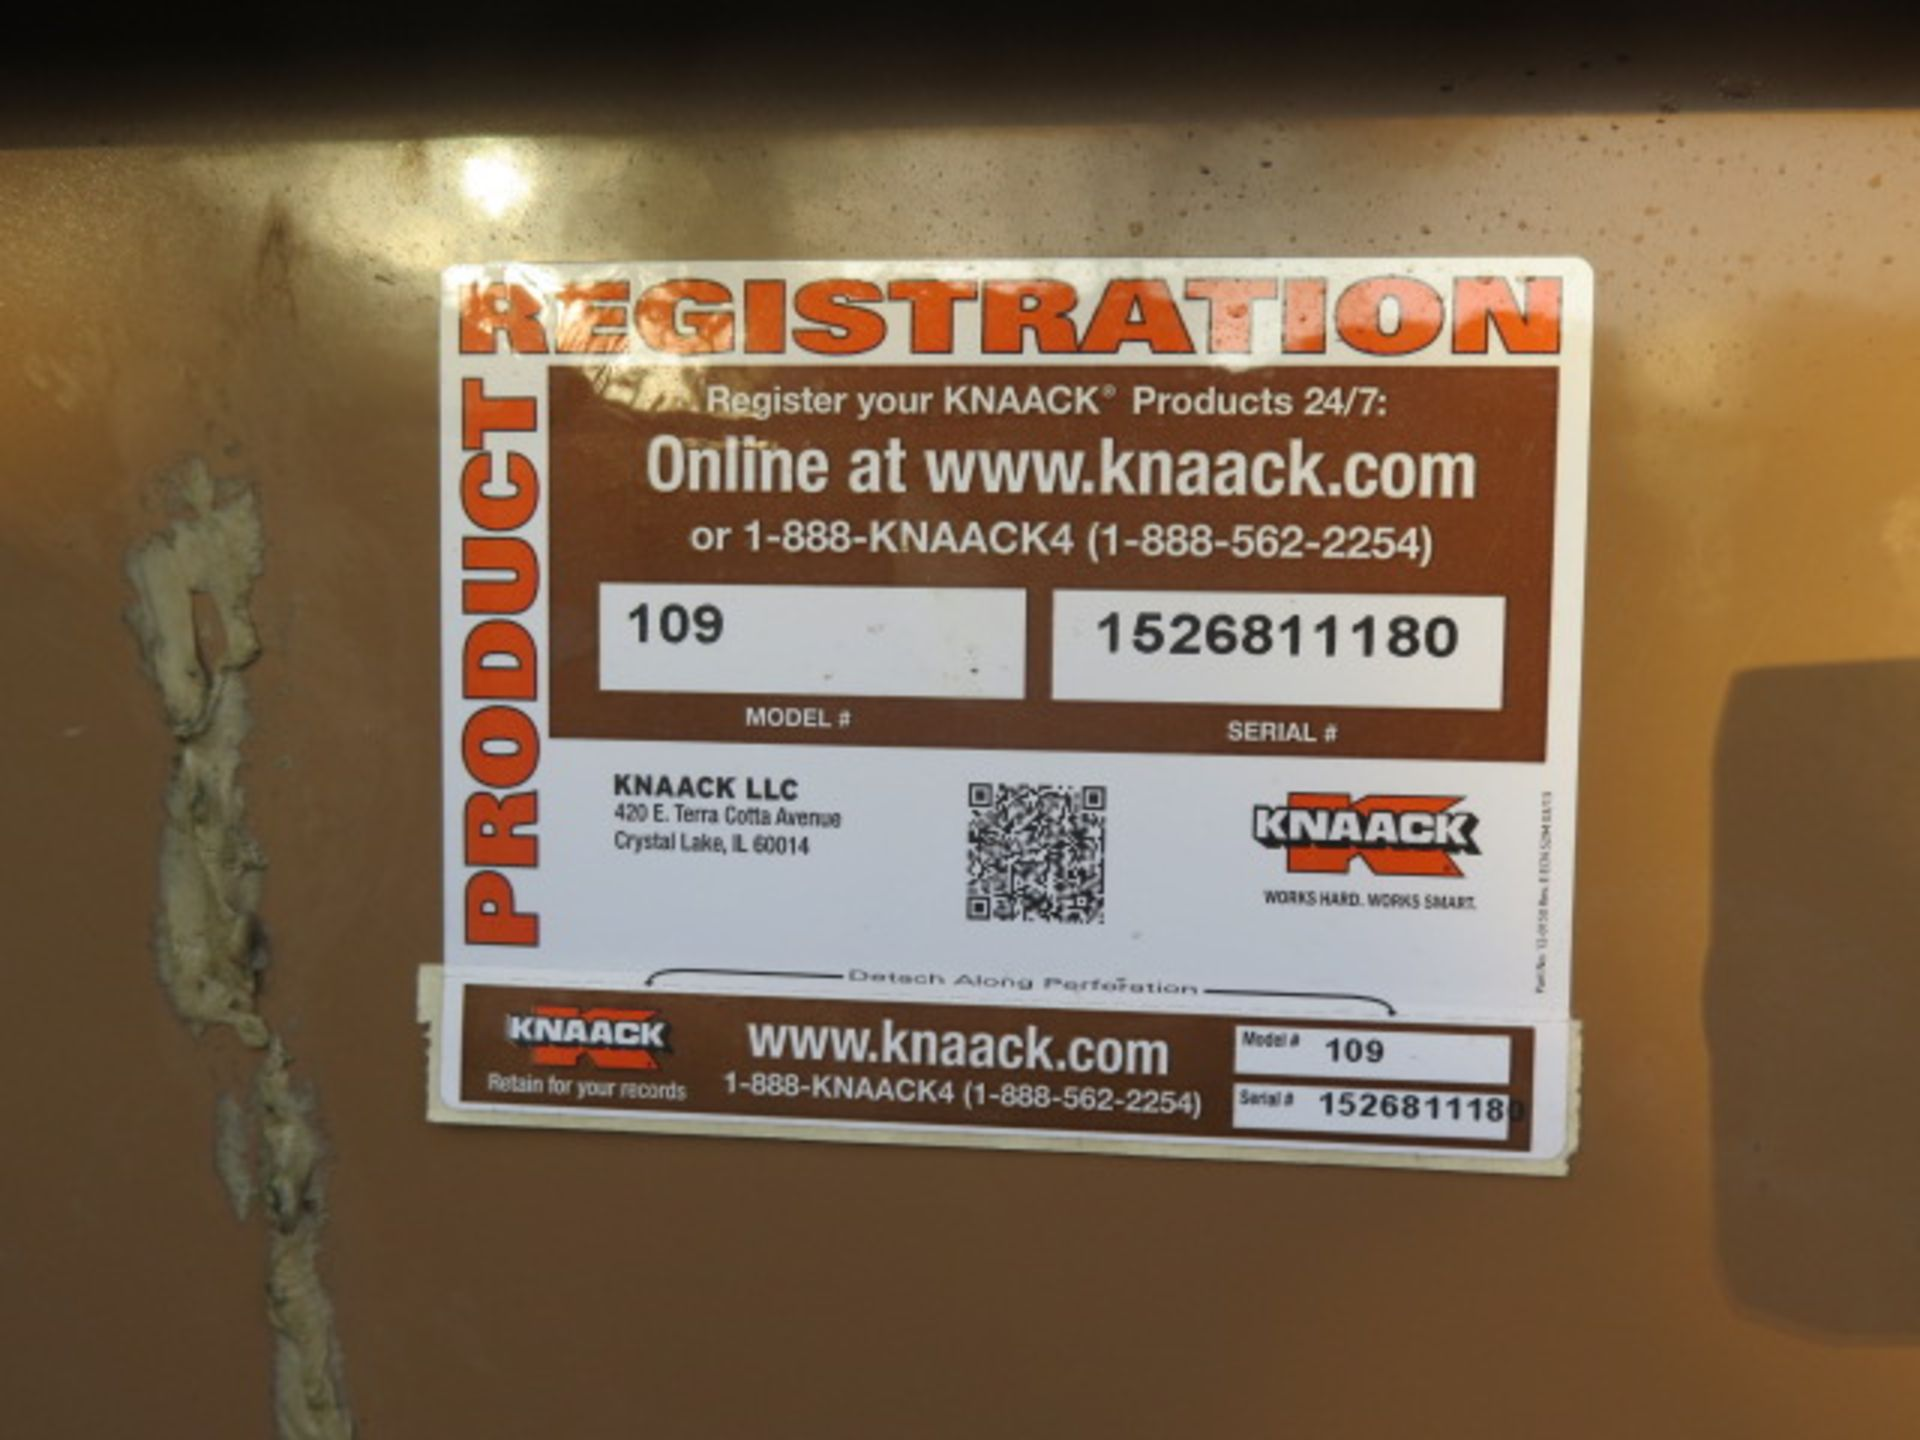 Knaack 109 Jobmaster Rolling Job Box w/ Safety Supplies (SOLD AS-IS - NO WARRANTY) - Image 19 of 19